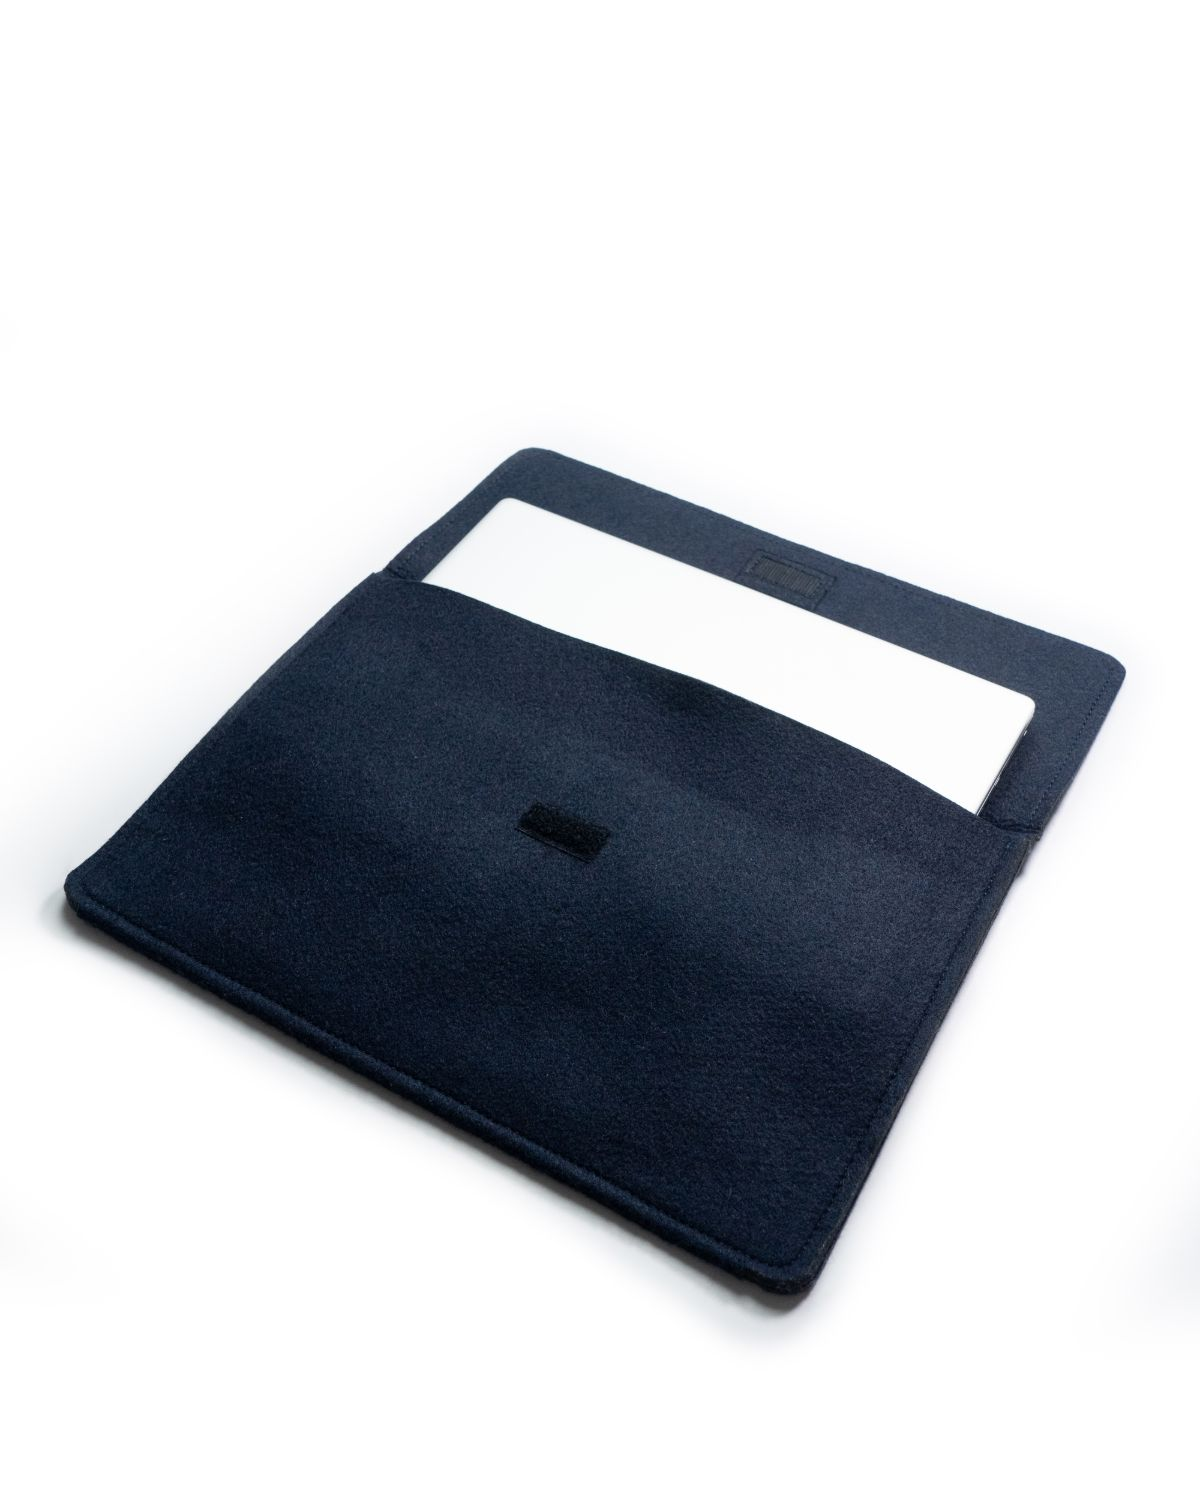 Funda LAPATX - Navy blue